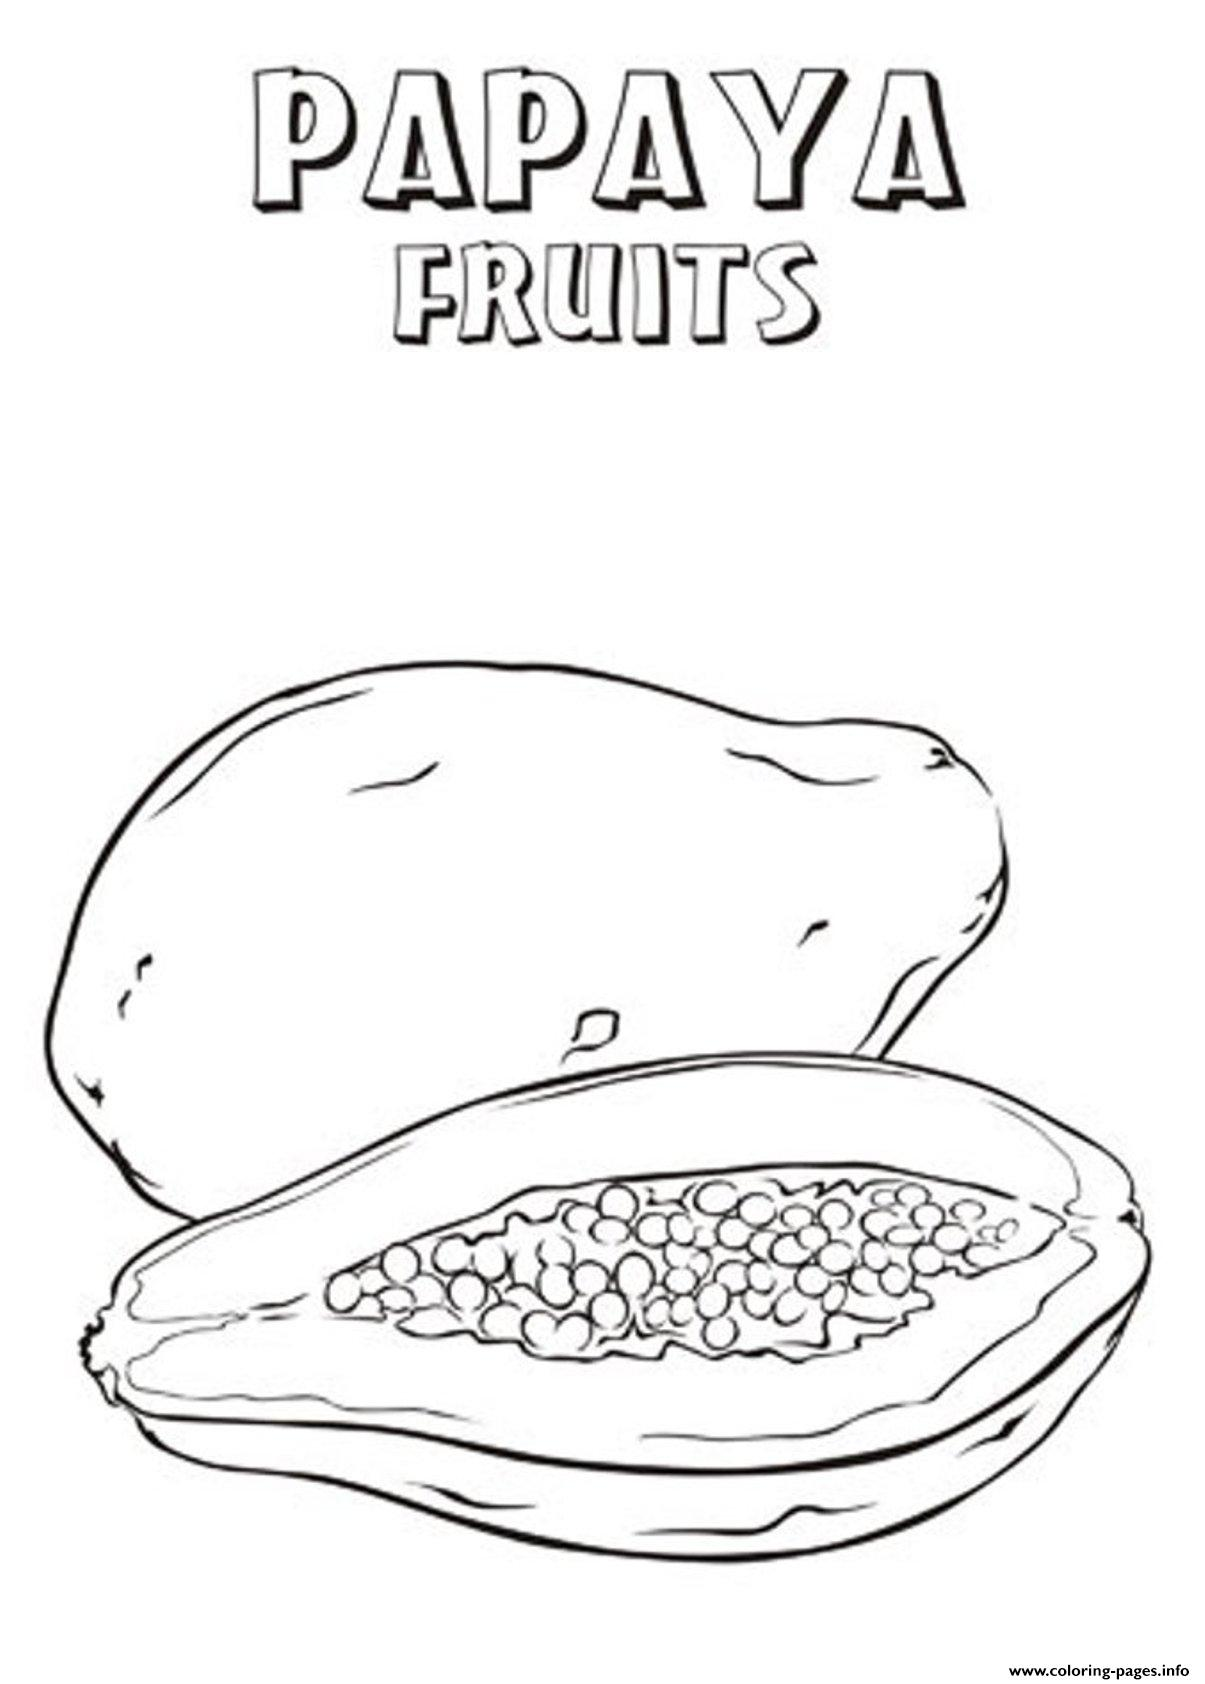 Mango coloring pages 4 coloringpagehub - Printable Papaya Fruit S3e35 Coloring Pages Printable